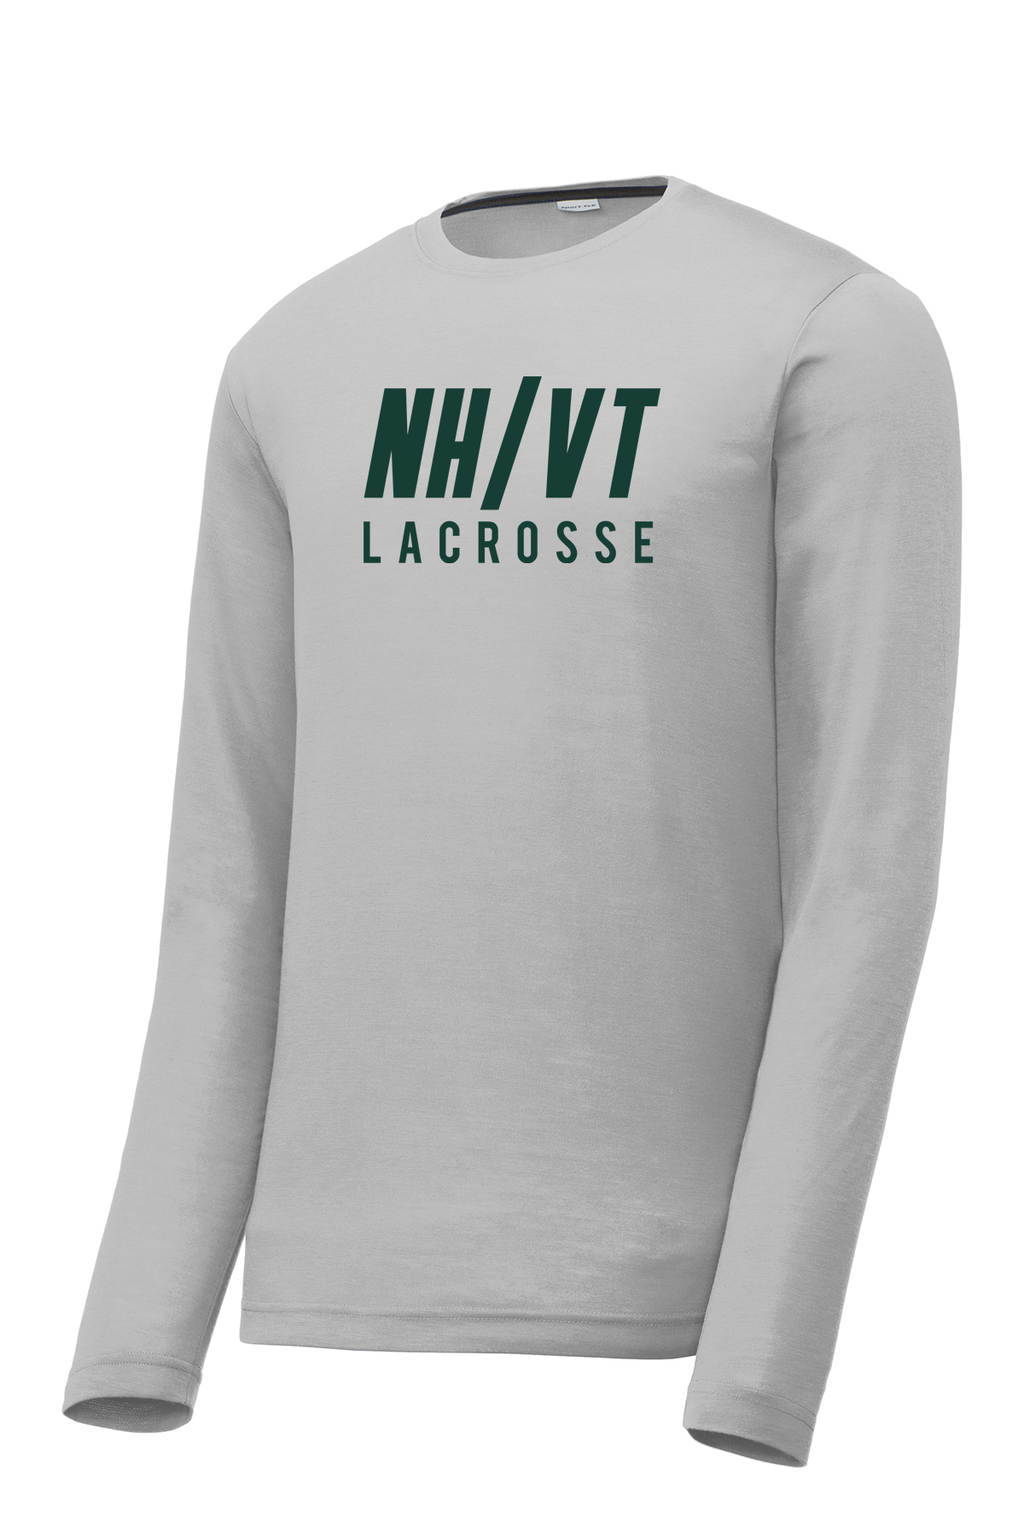 NH/VT Lacrosse  Long Sleeve CottonTouch Performance Shirt